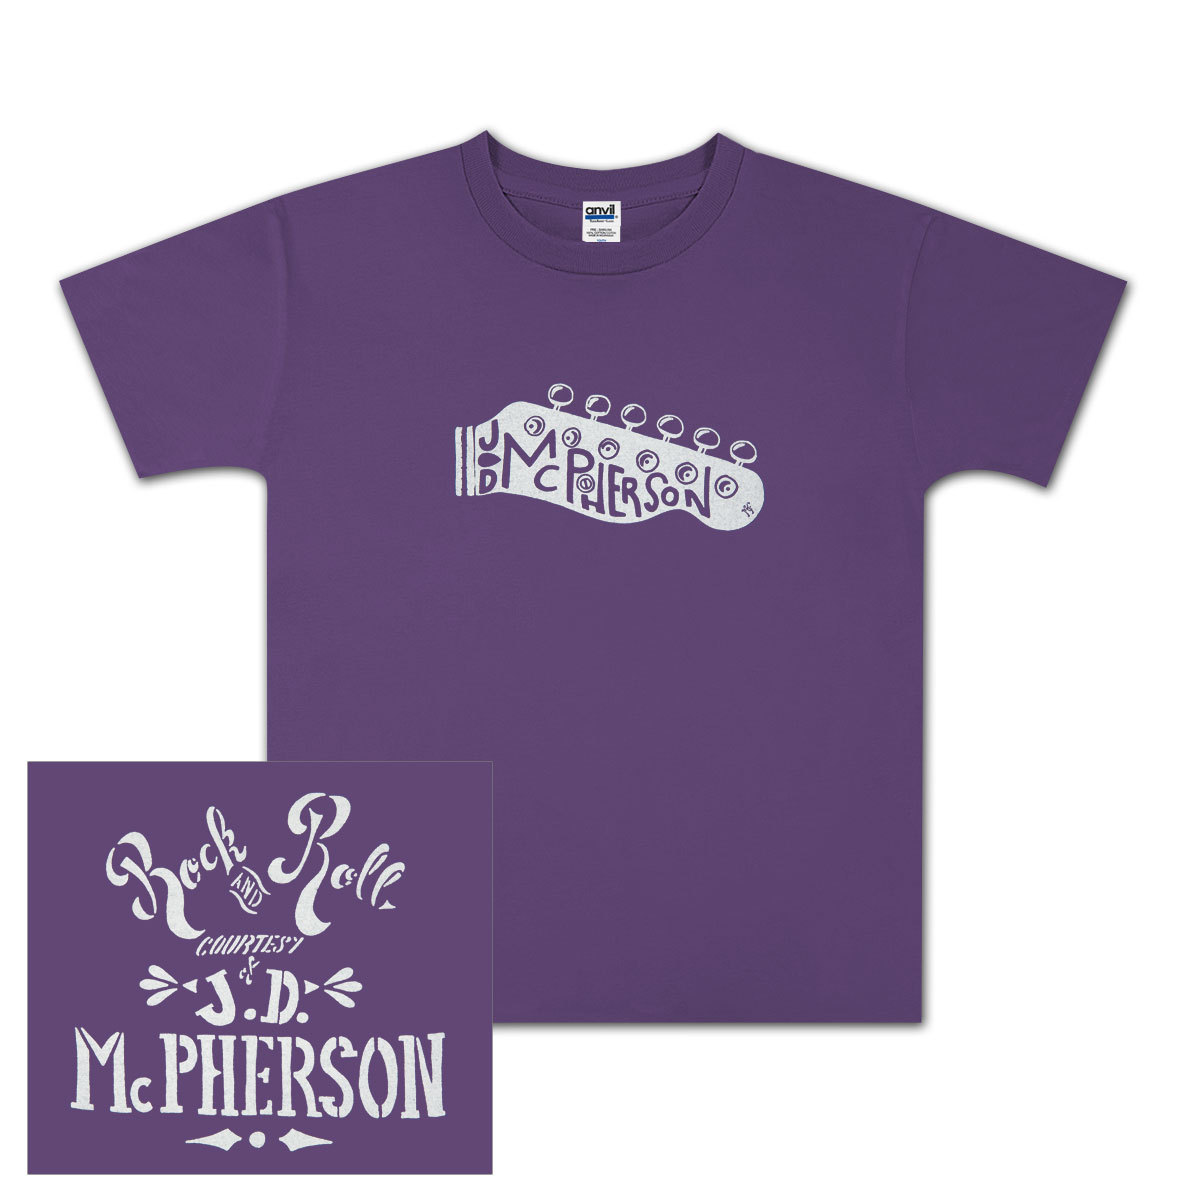 JD McPherson Rock and Roll Youth Tee - Purple